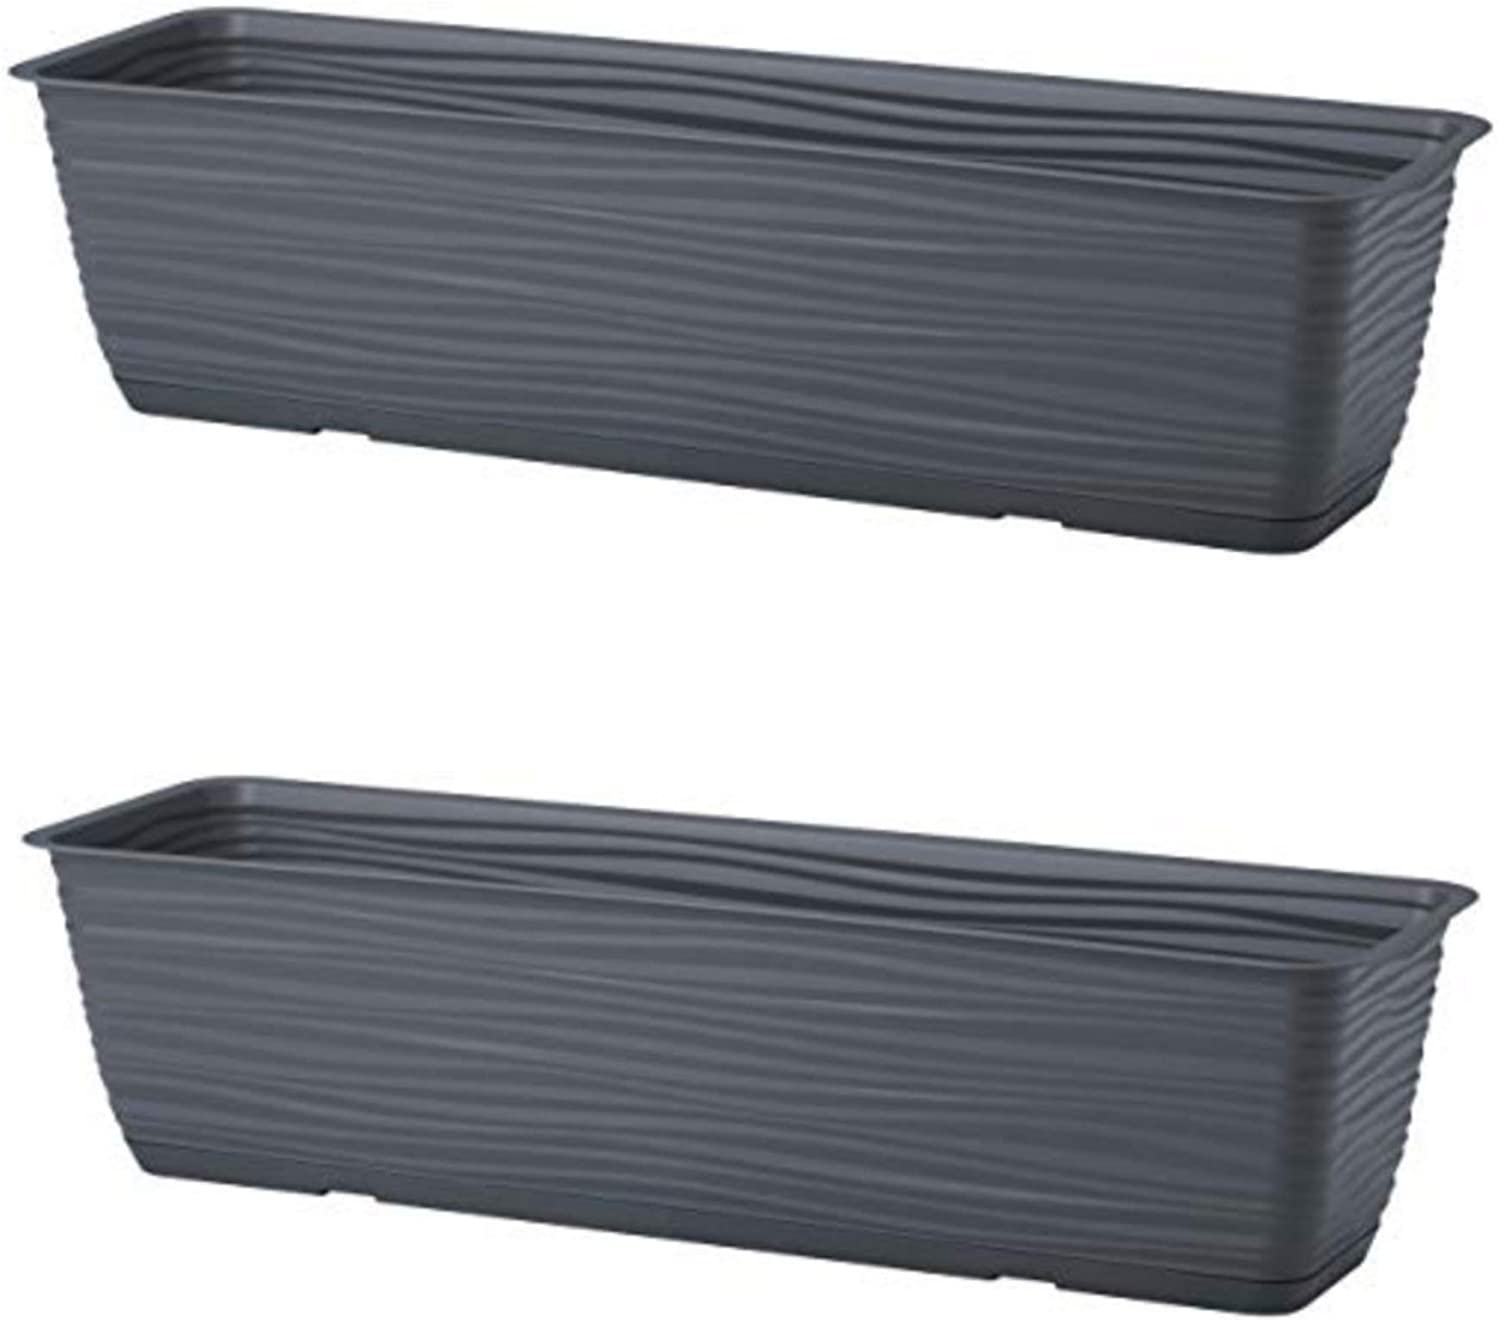 "United Frames and Products Michigan Dunes Planter Box, Herb Garden with Drip Tray, 23"" 2 Pack (ADD-ON: Adjustable Hanging Rail Brackets) (Dark Gray)"